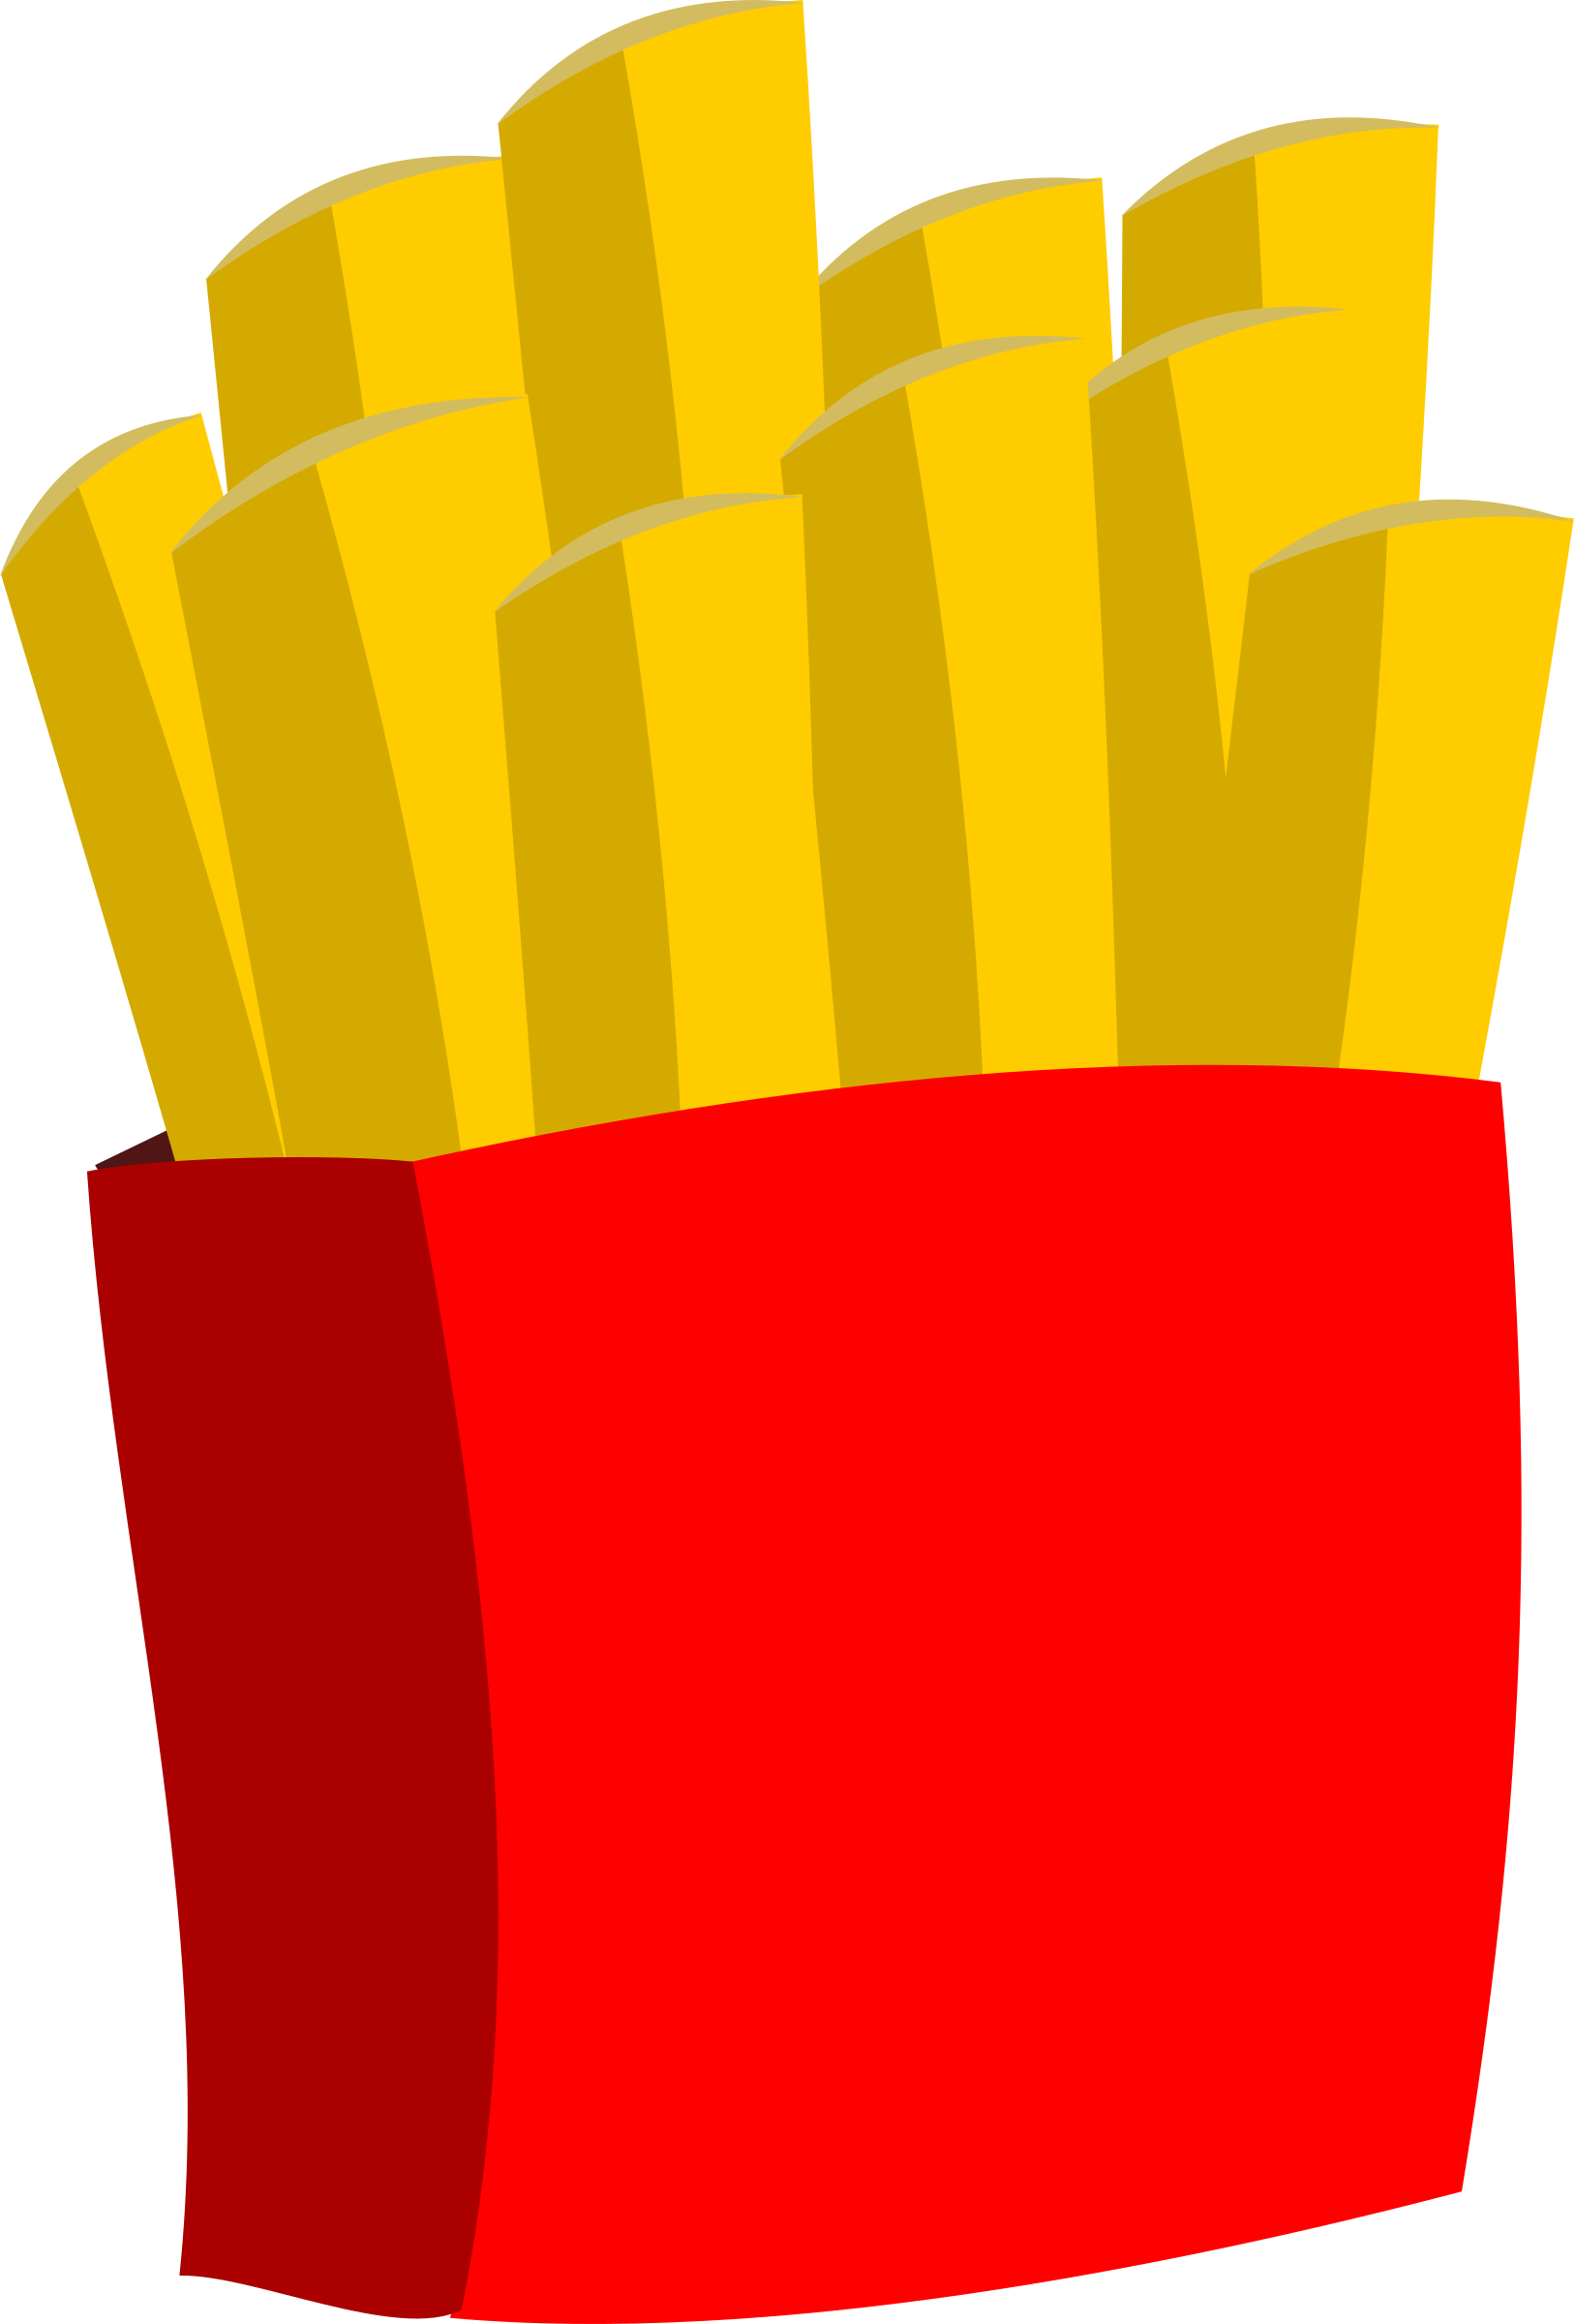 clip art free Chips clipart. Hot big image png